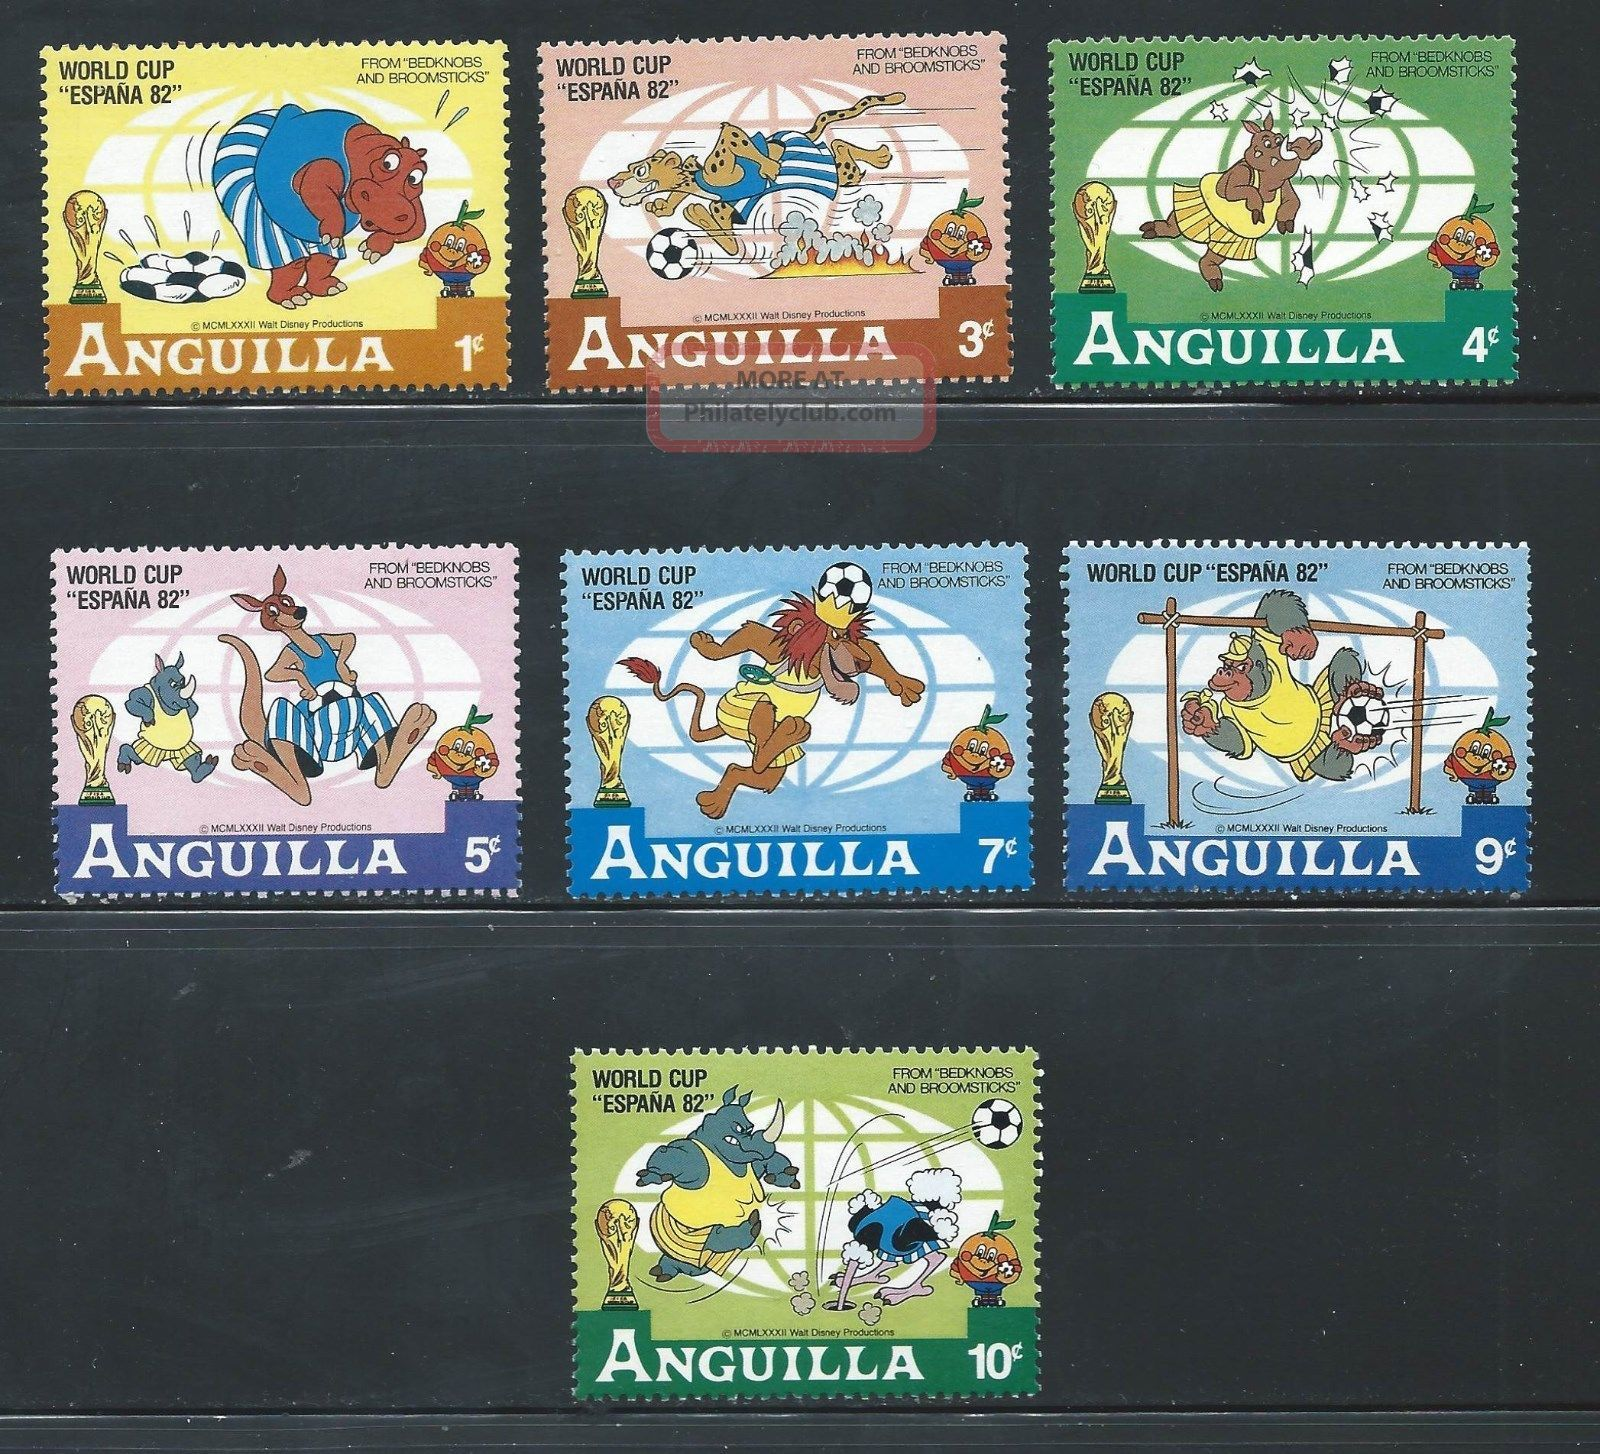 Anguilla - Sc 492 - 98 - Disney - Soccer World Cup Topical Stamps photo